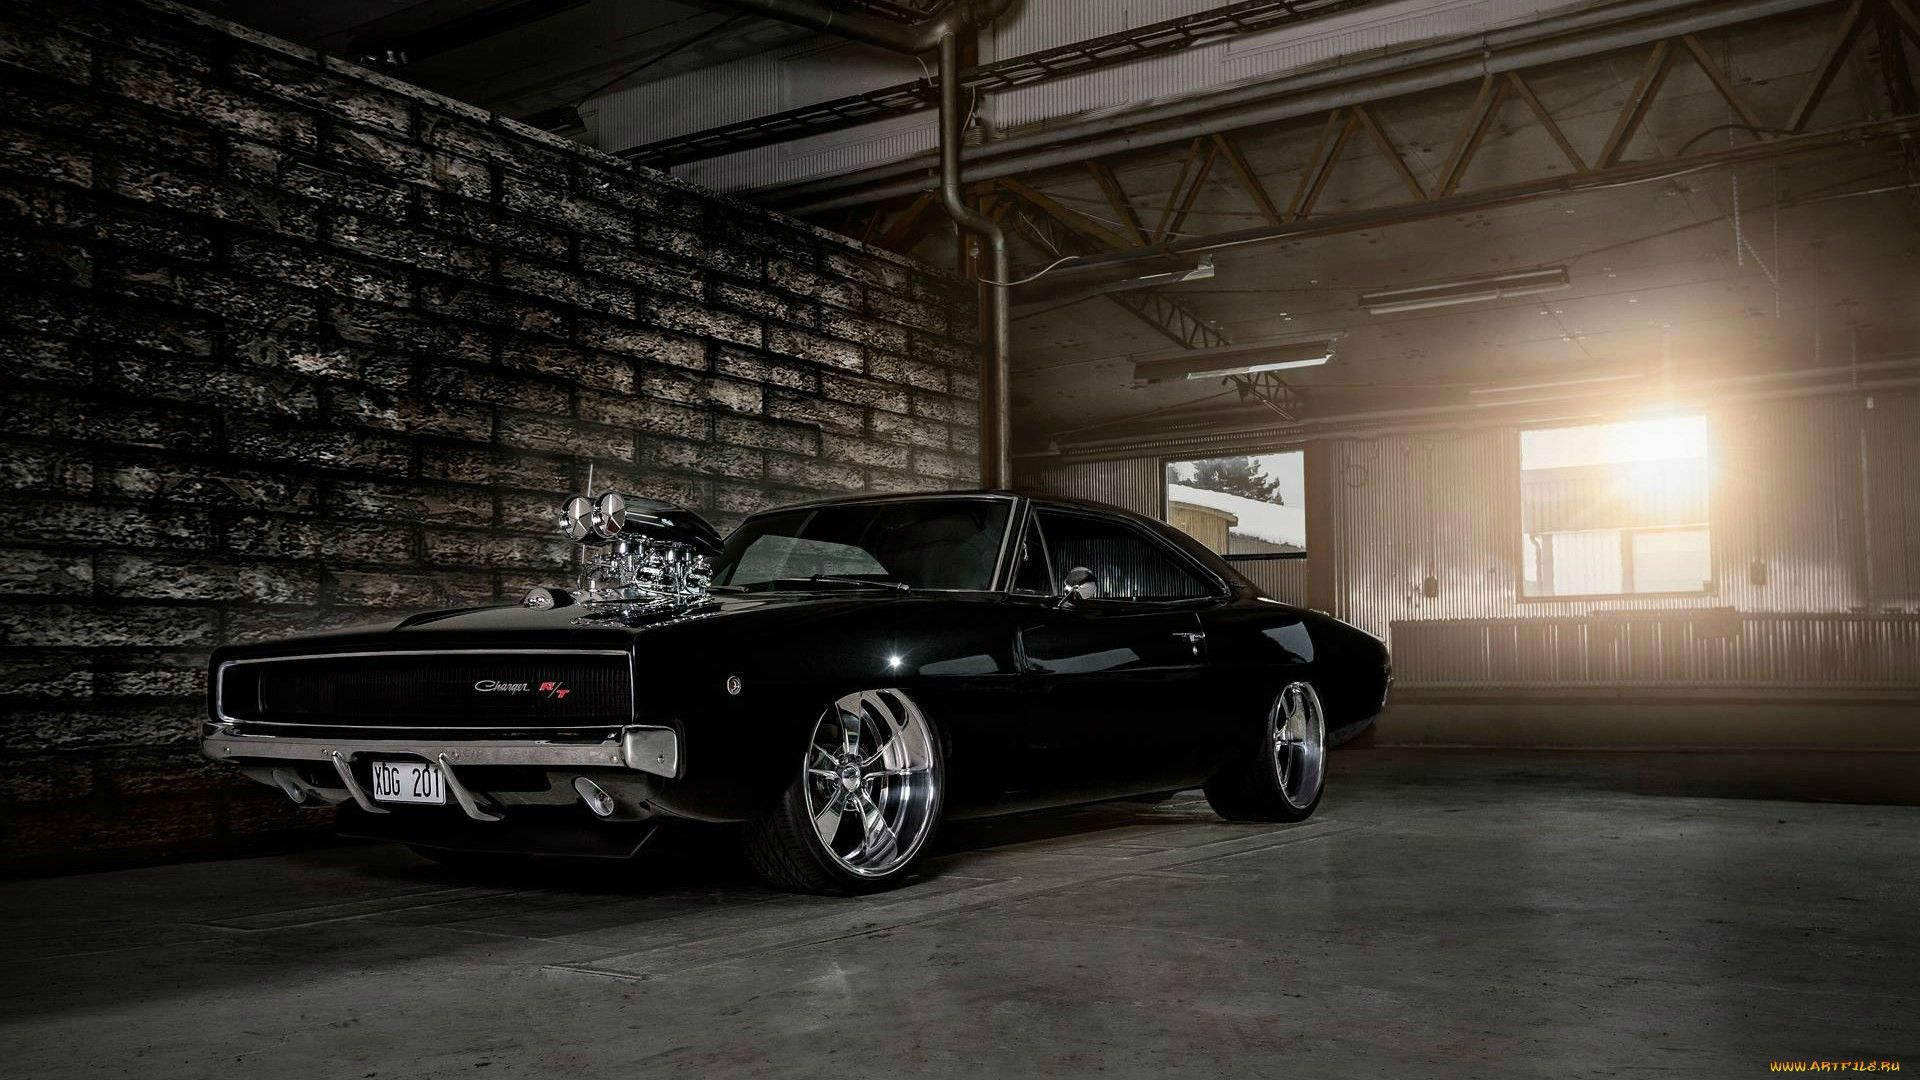 dodge charger car wallpapers hd 1080p - http://hdcarwallfx/dodge